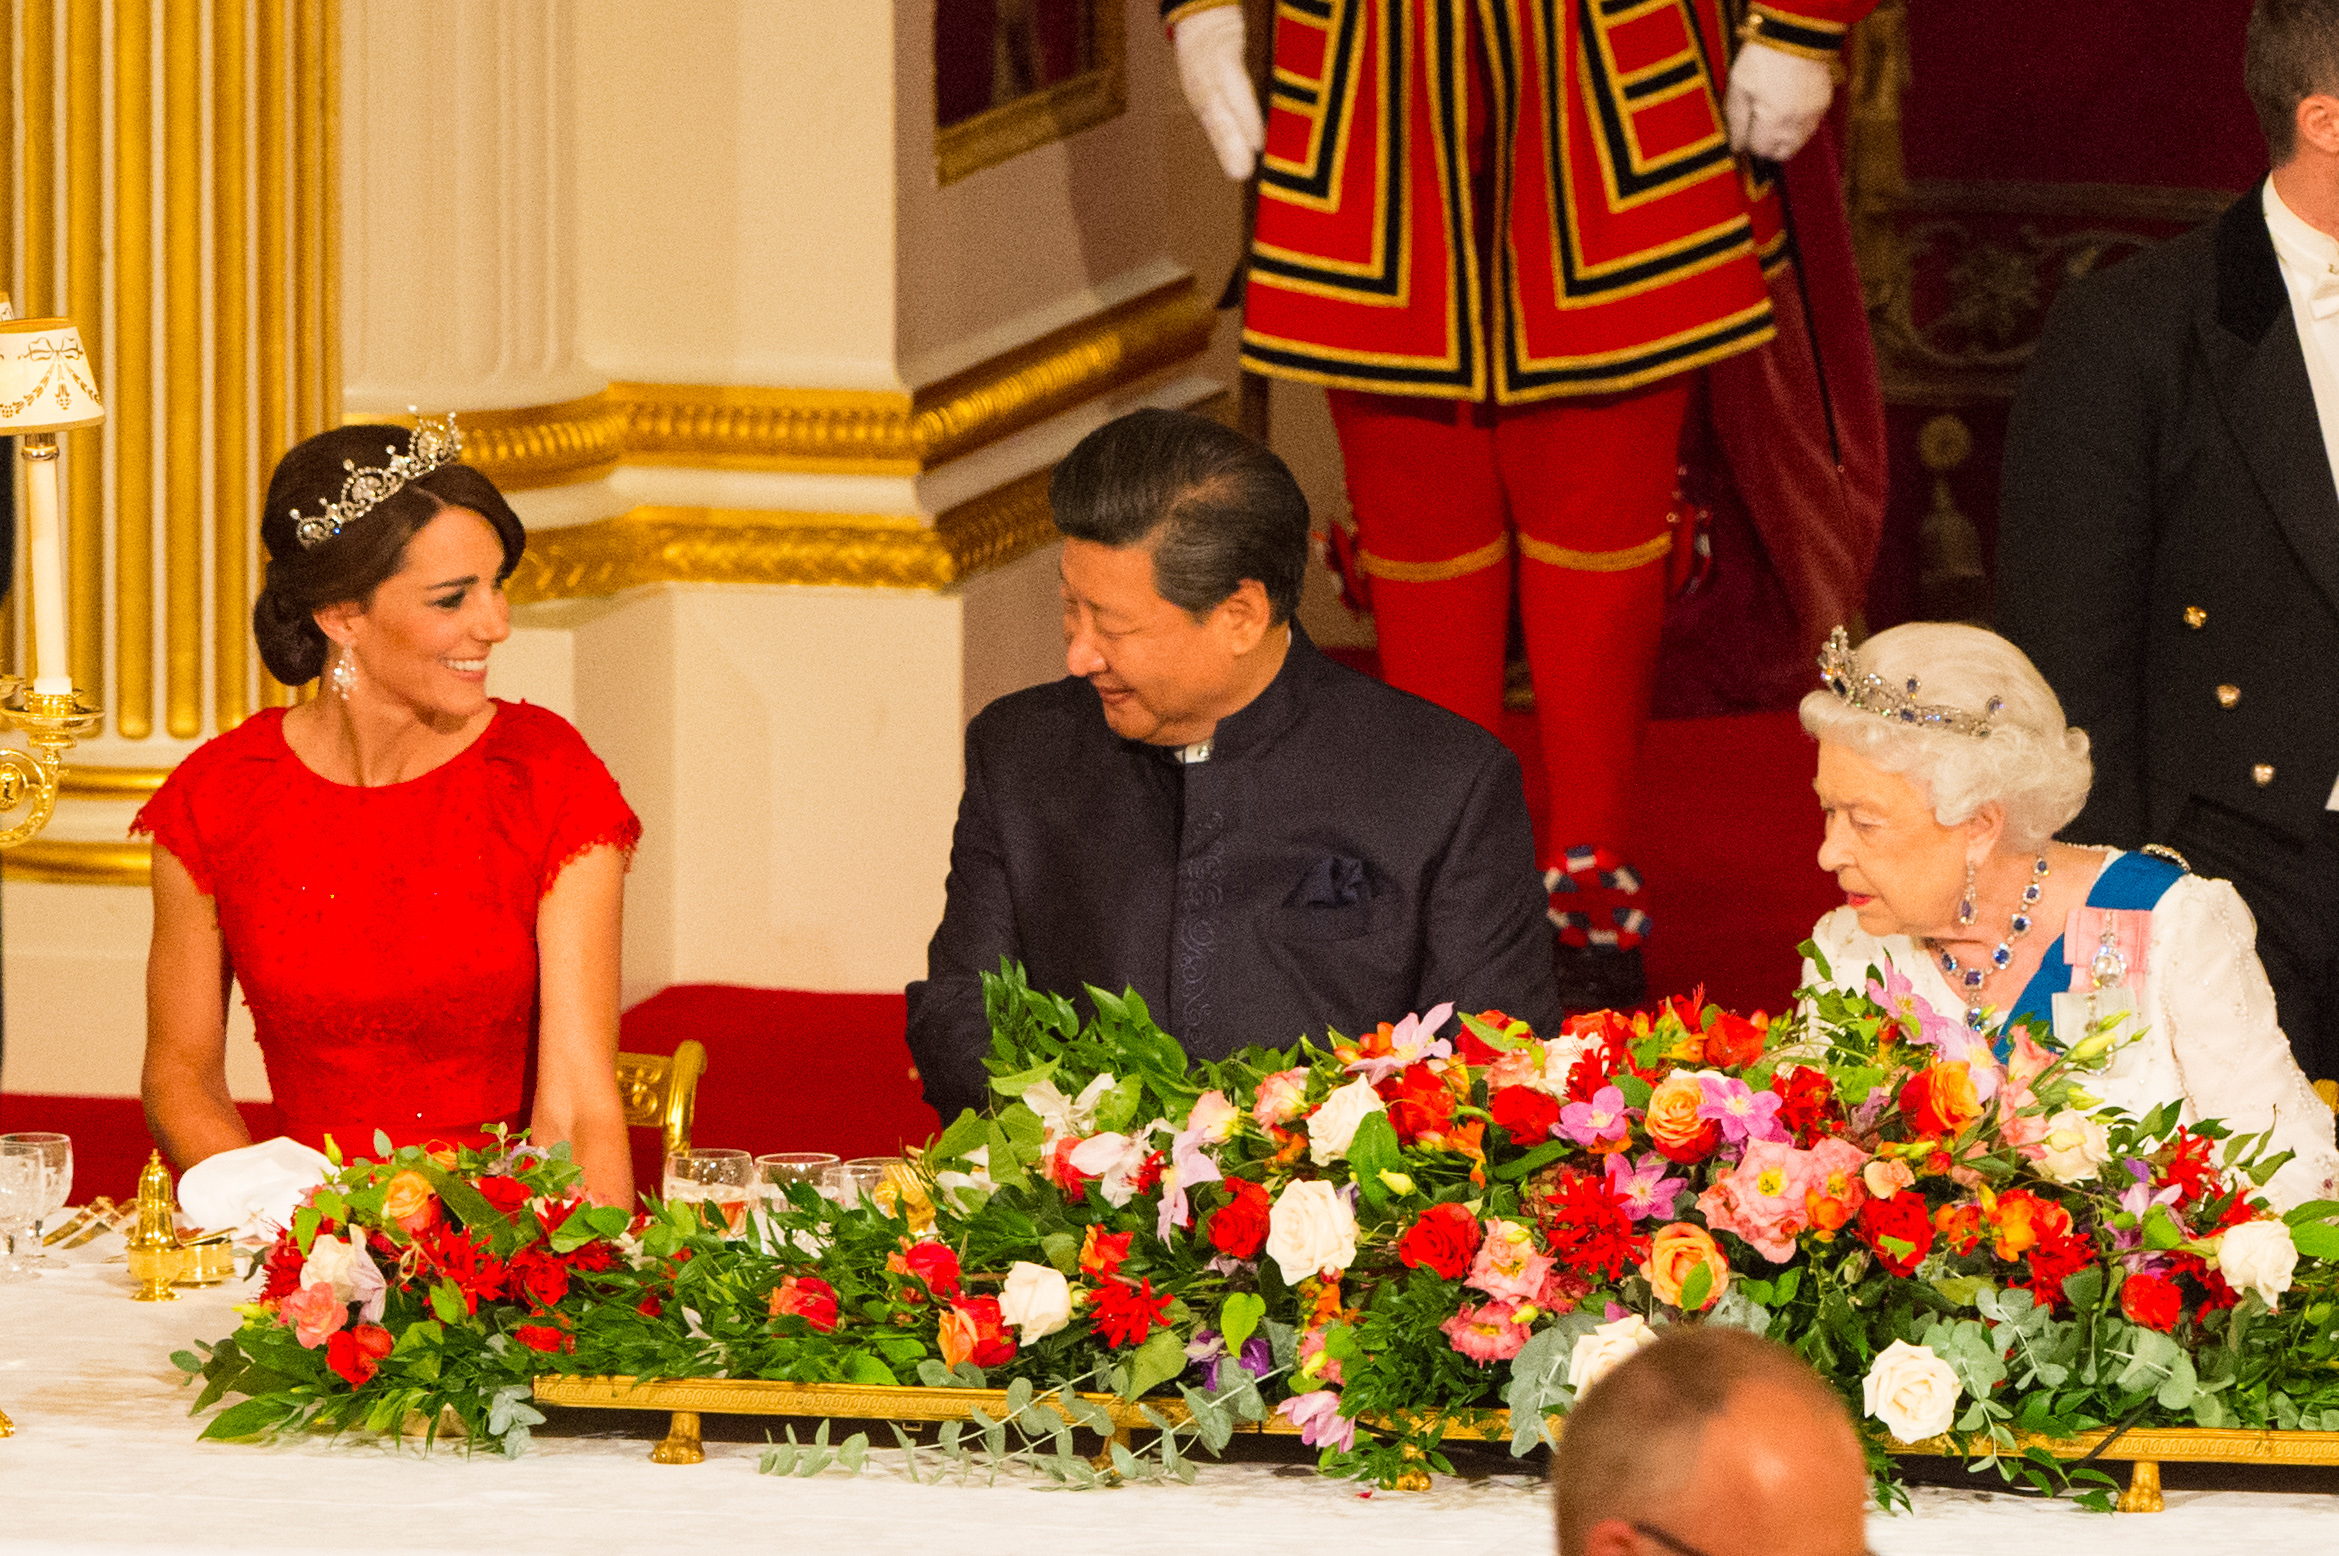 Chinese President Xi Jinping with the Duchess of Cambridge (left) and Queen Elizabeth II at a state banquet at Buckingham Palace, London, during the first day of his state visit to the UK. PRESS ASSOCIATION Photo. Picture date: Tuesday October 20, 2015. See PA story ROYAL China. Photo credit should read: Dominic Lipinski/PA Wire